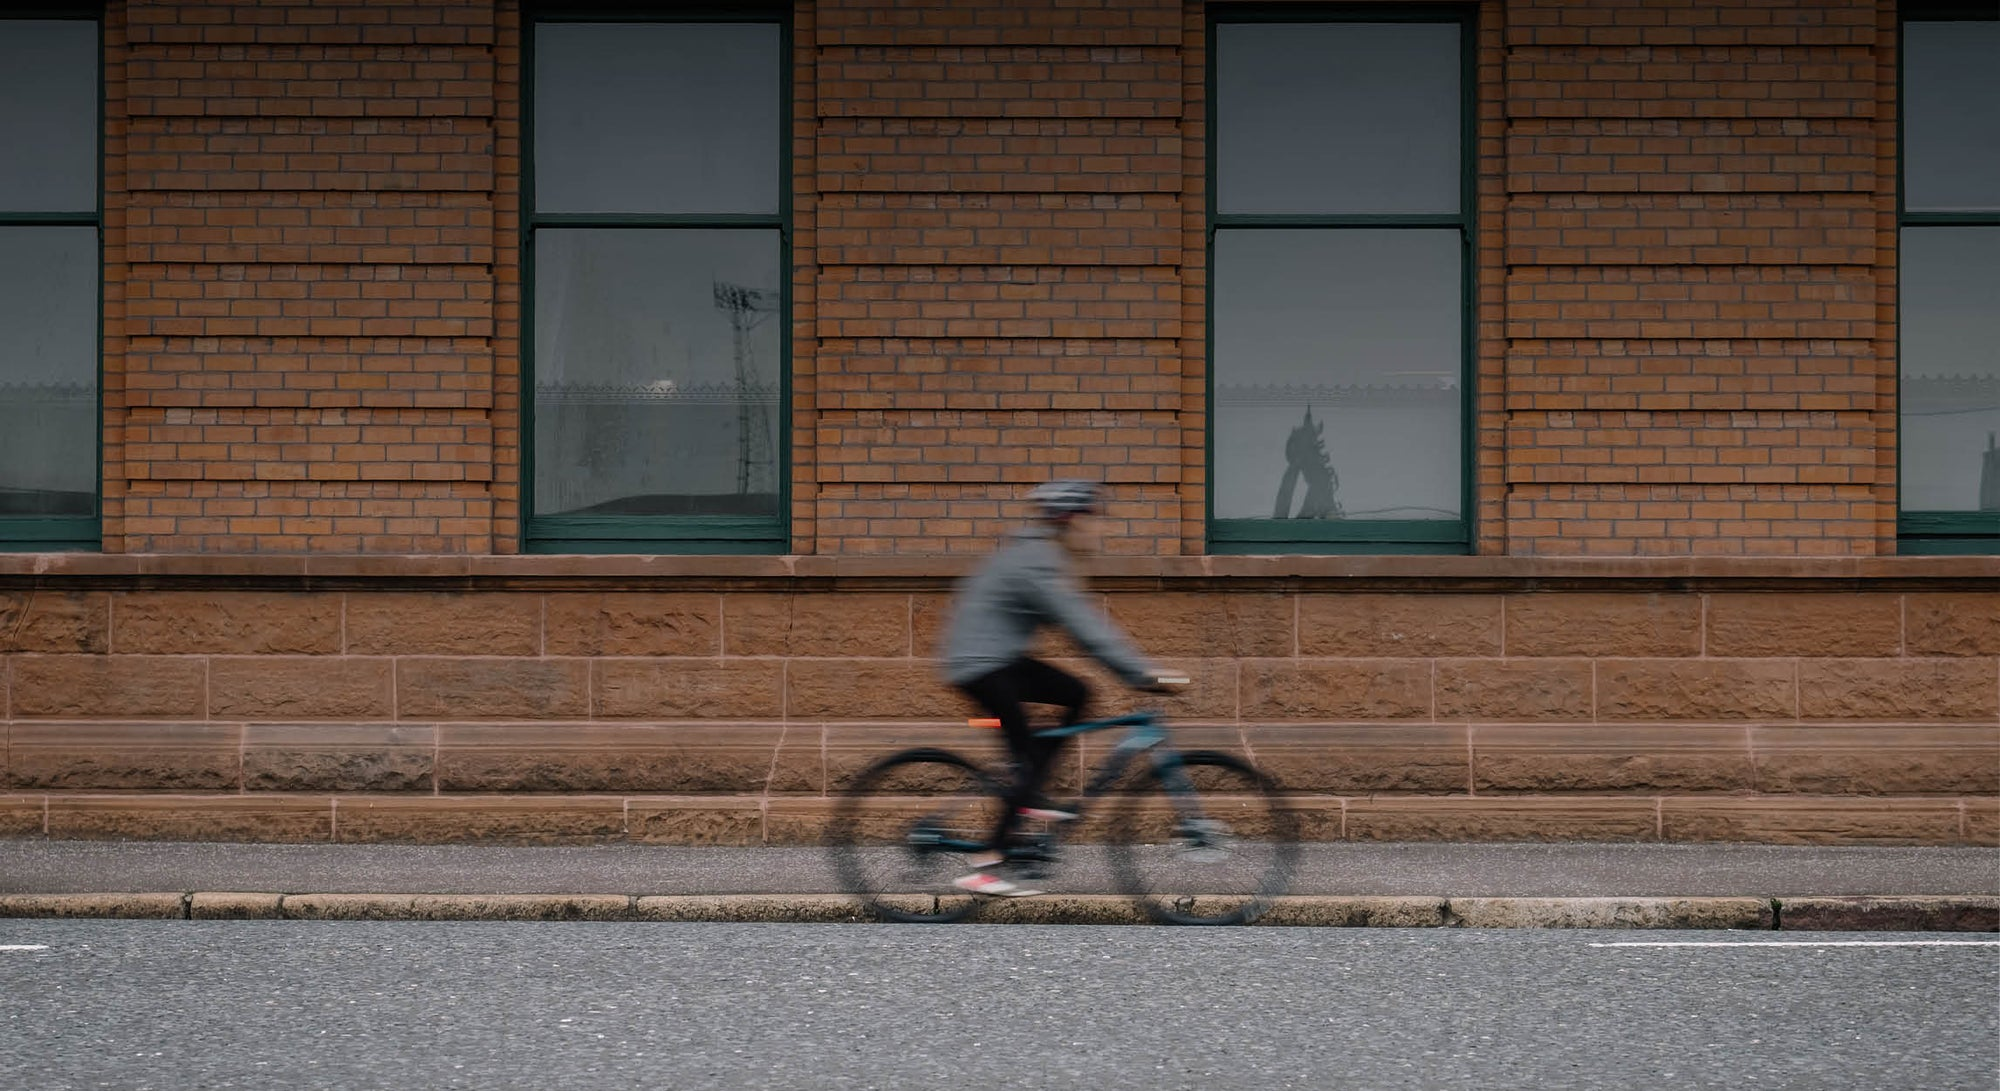 See.Sense - Announcing Our New Smart Cycling Project In Denver